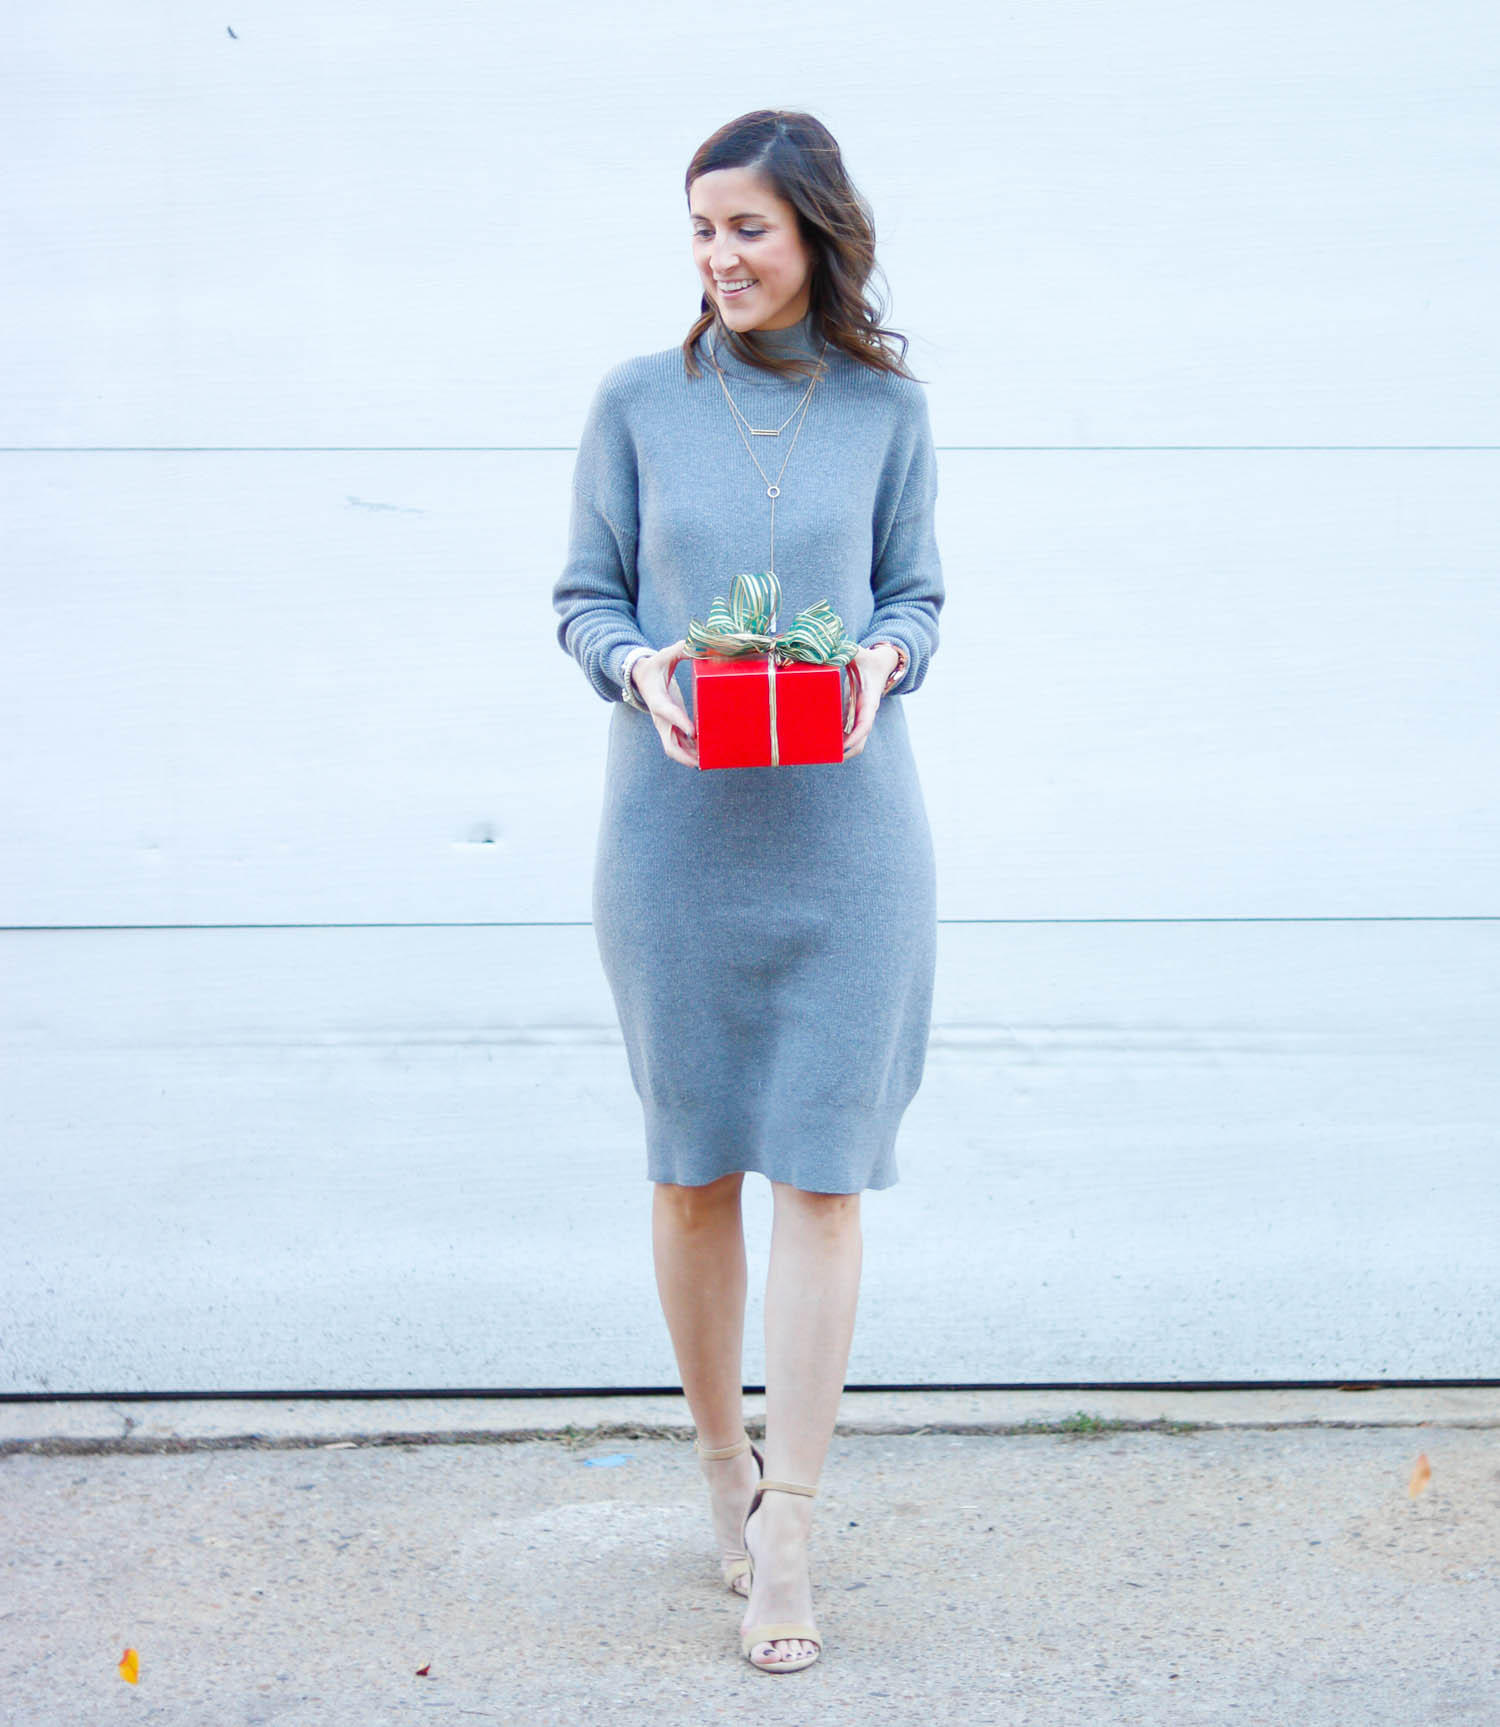 Nordstrom Sweater Dress - Grey Sweater Dress for the Holidays by Washington DC style blogger Cobalt Chronicles